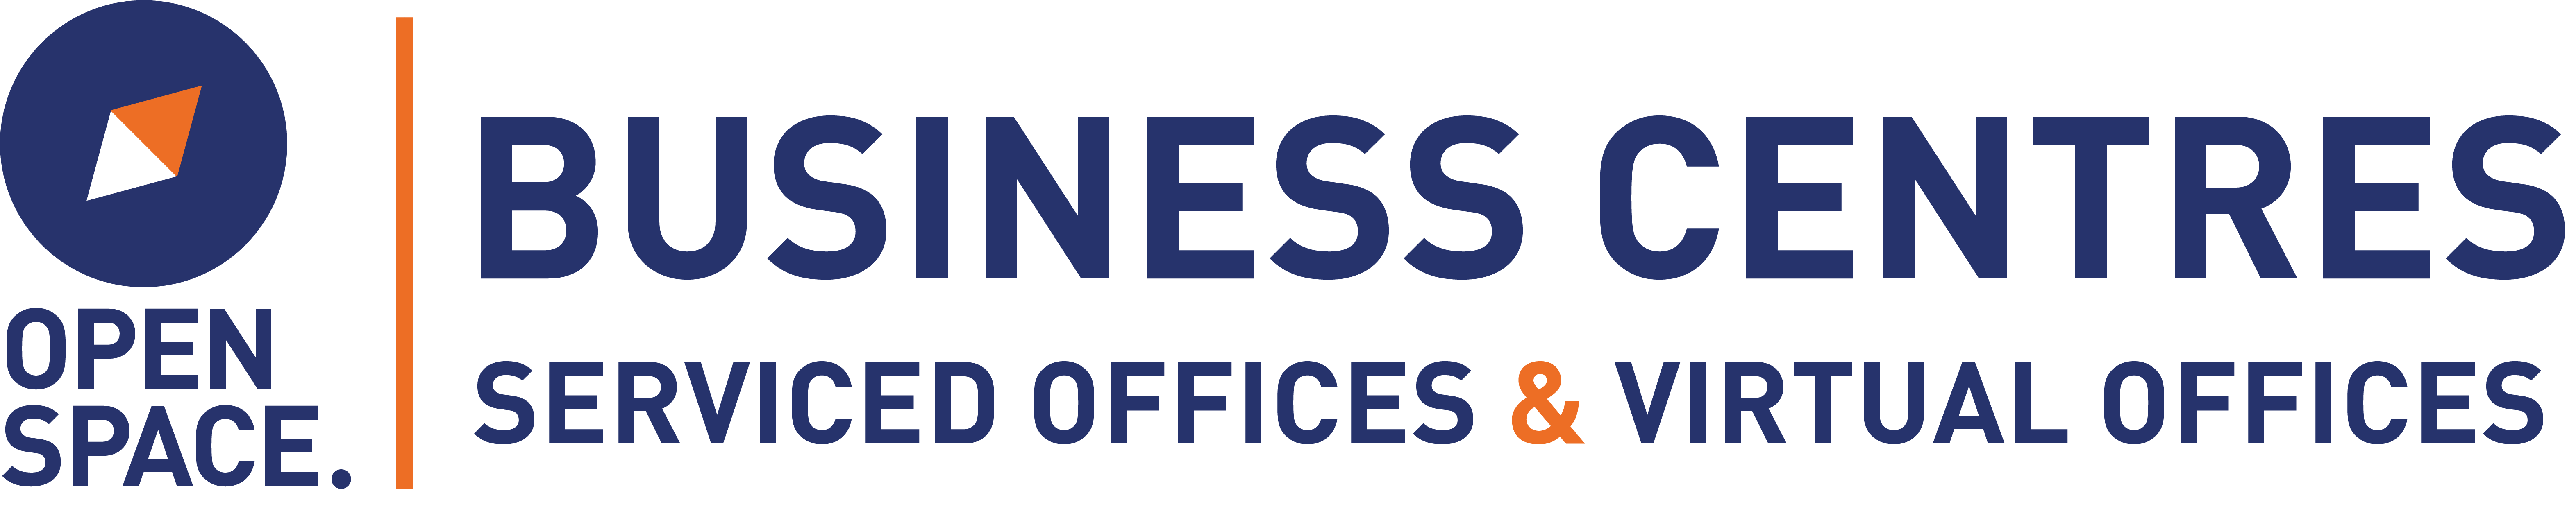 Open Space Rooms | Offices | Malvern Worcestershire